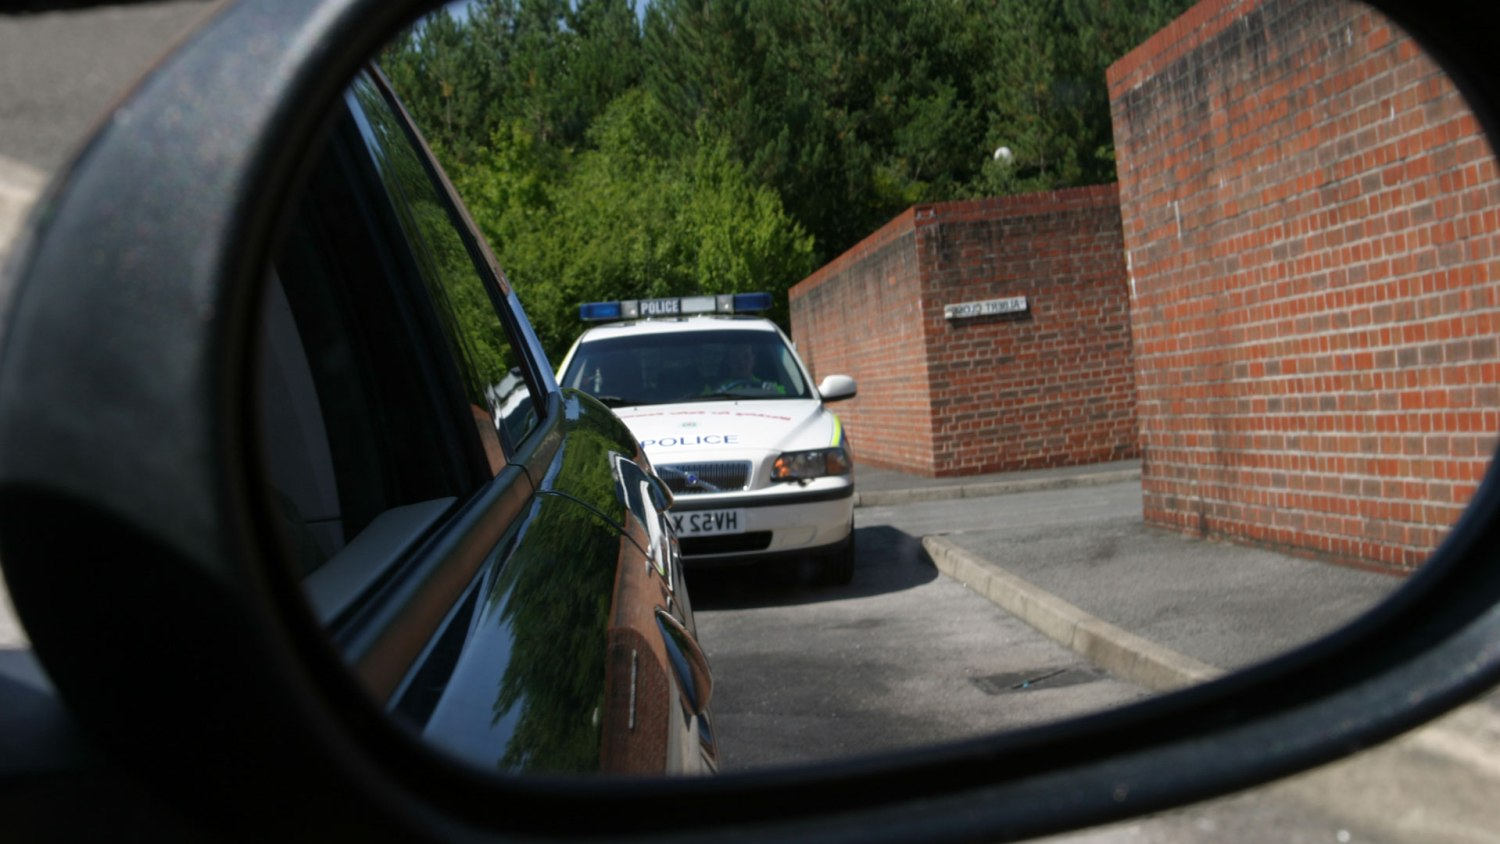 Fewer drivers caught without insurance